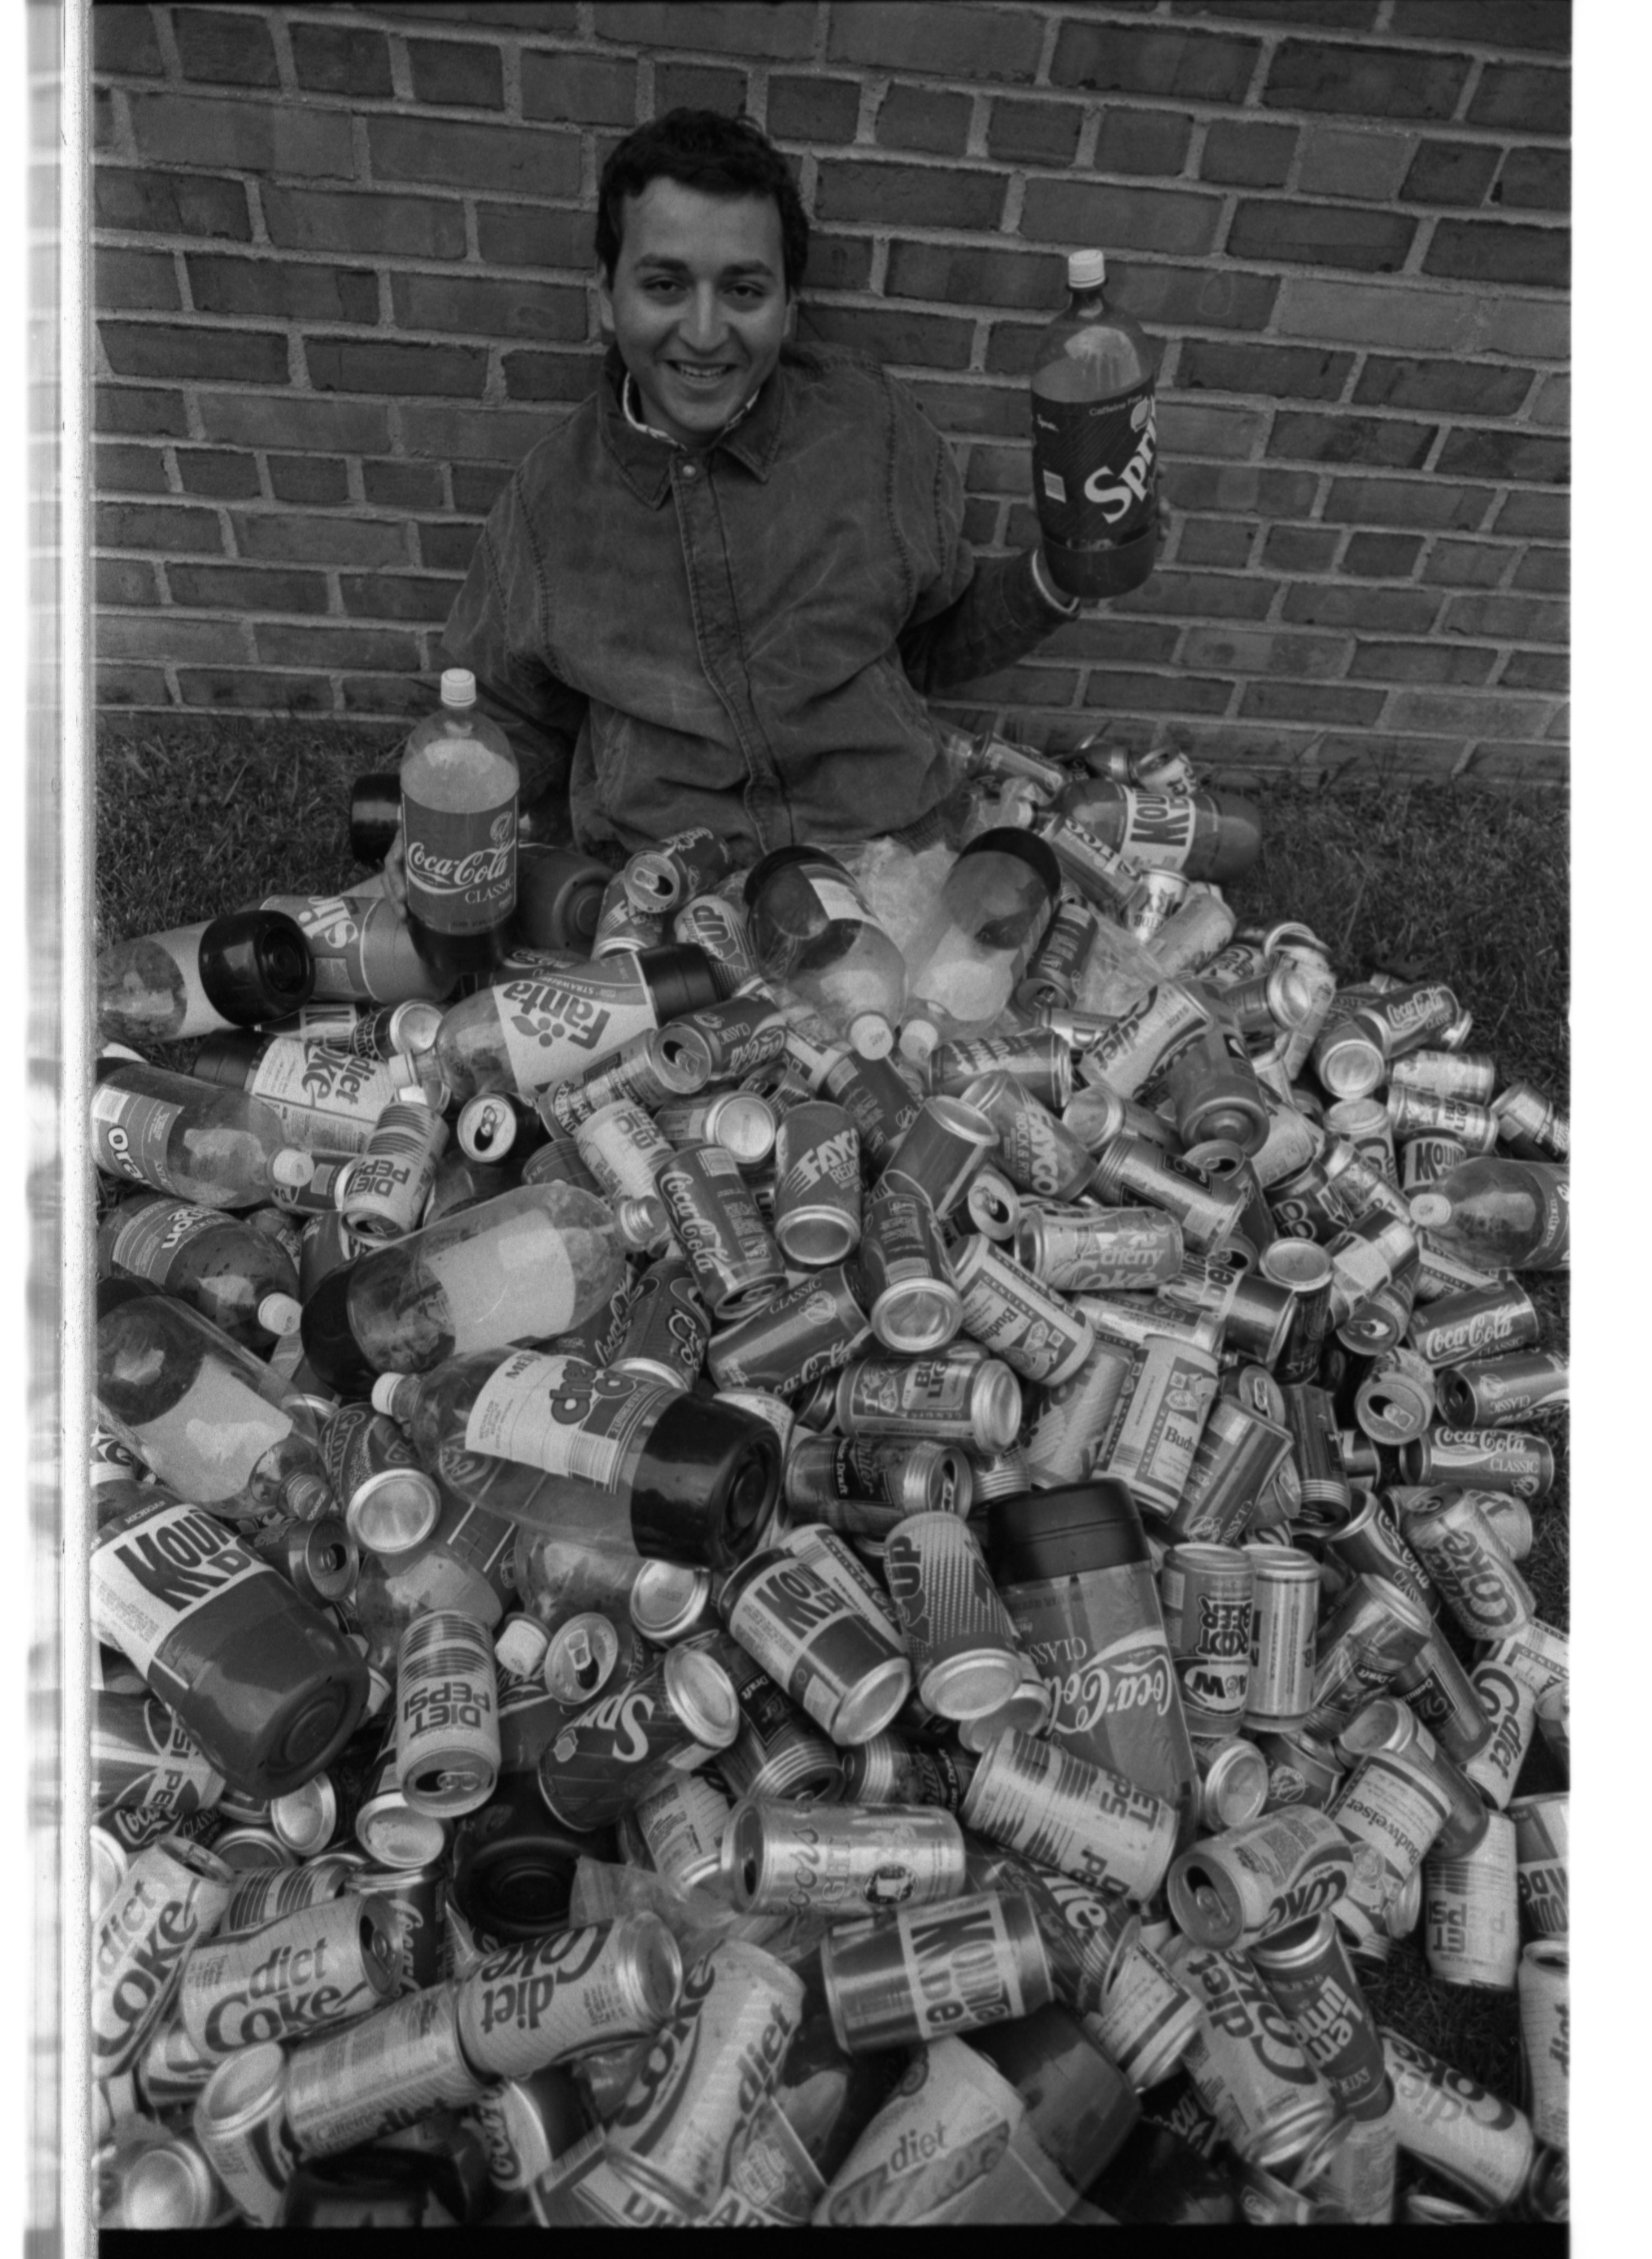 University of Michigan Student Peter Nicolas Raises Money for Homeless Services, November 1989 image